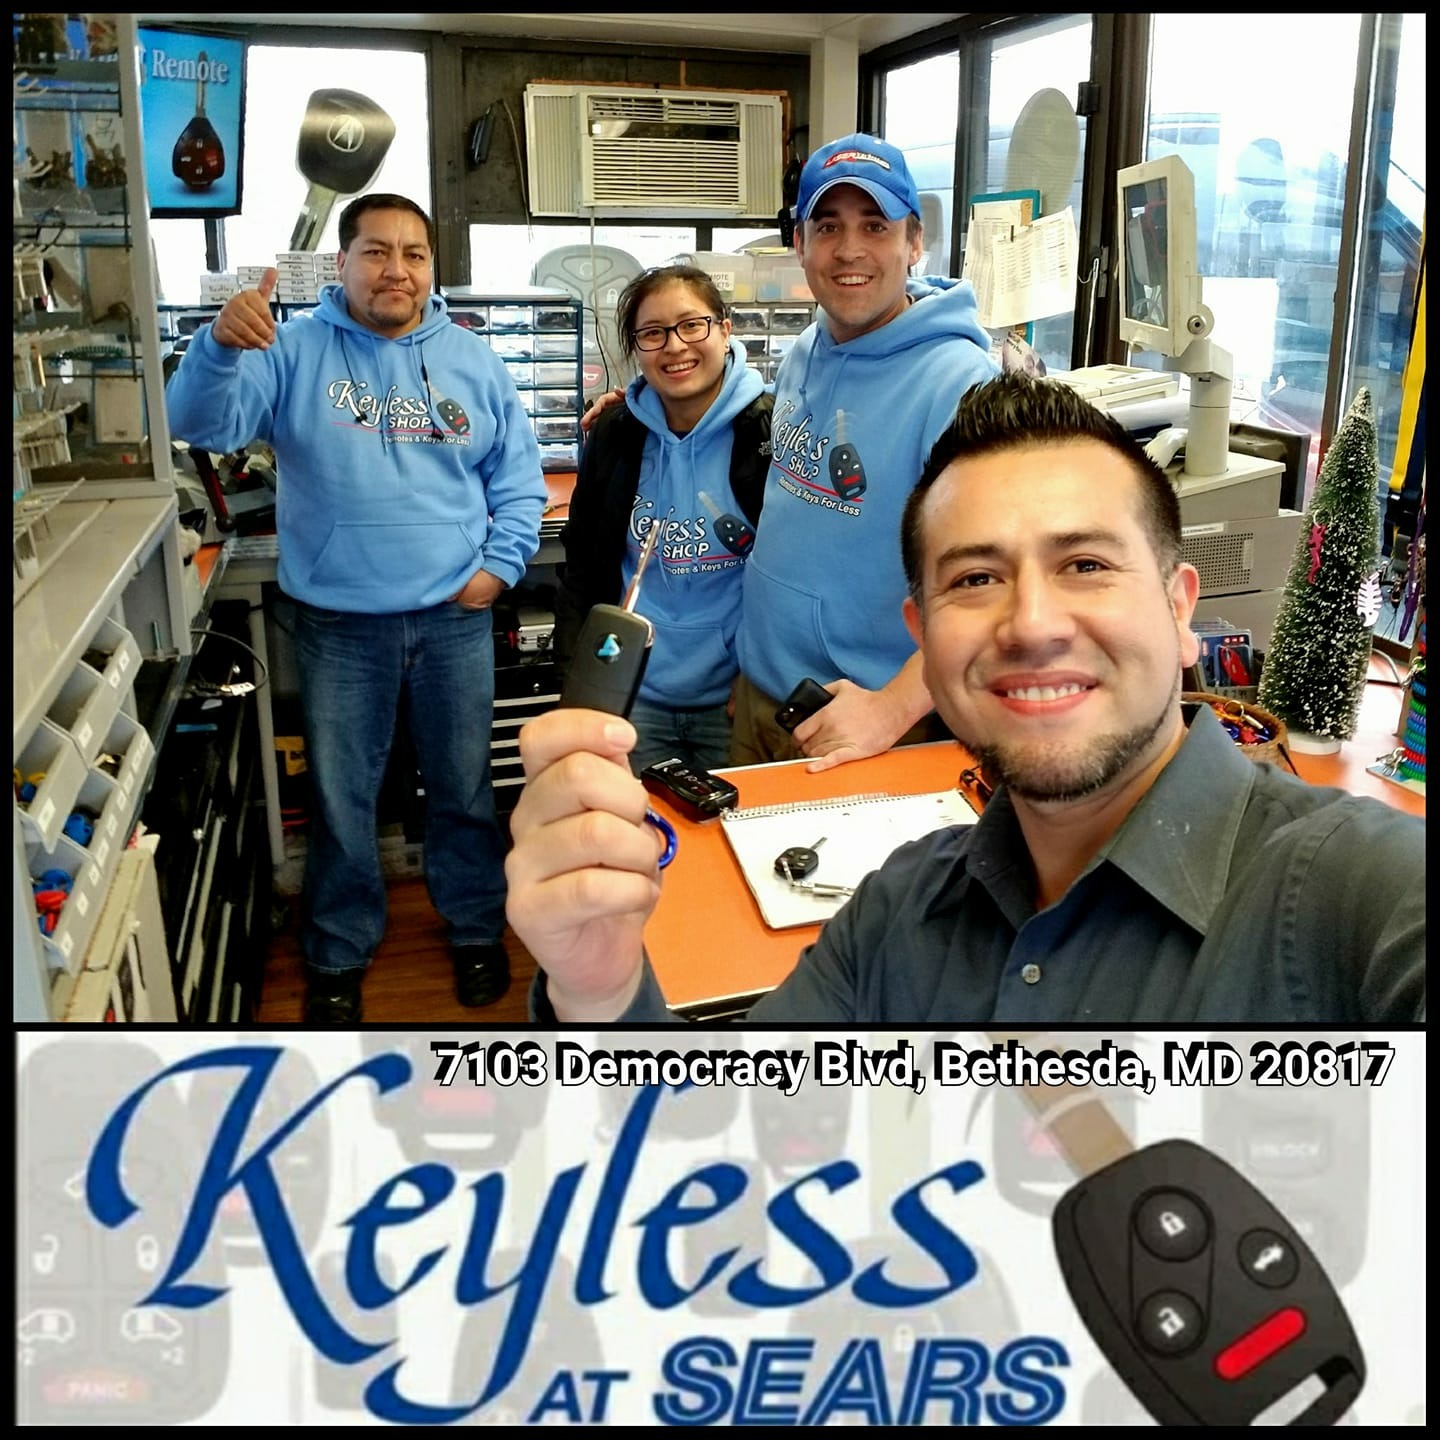 Does my car key have a chip? Ask The Keyless Shop at Sears! We are the Automotive Locksmith America trusts!